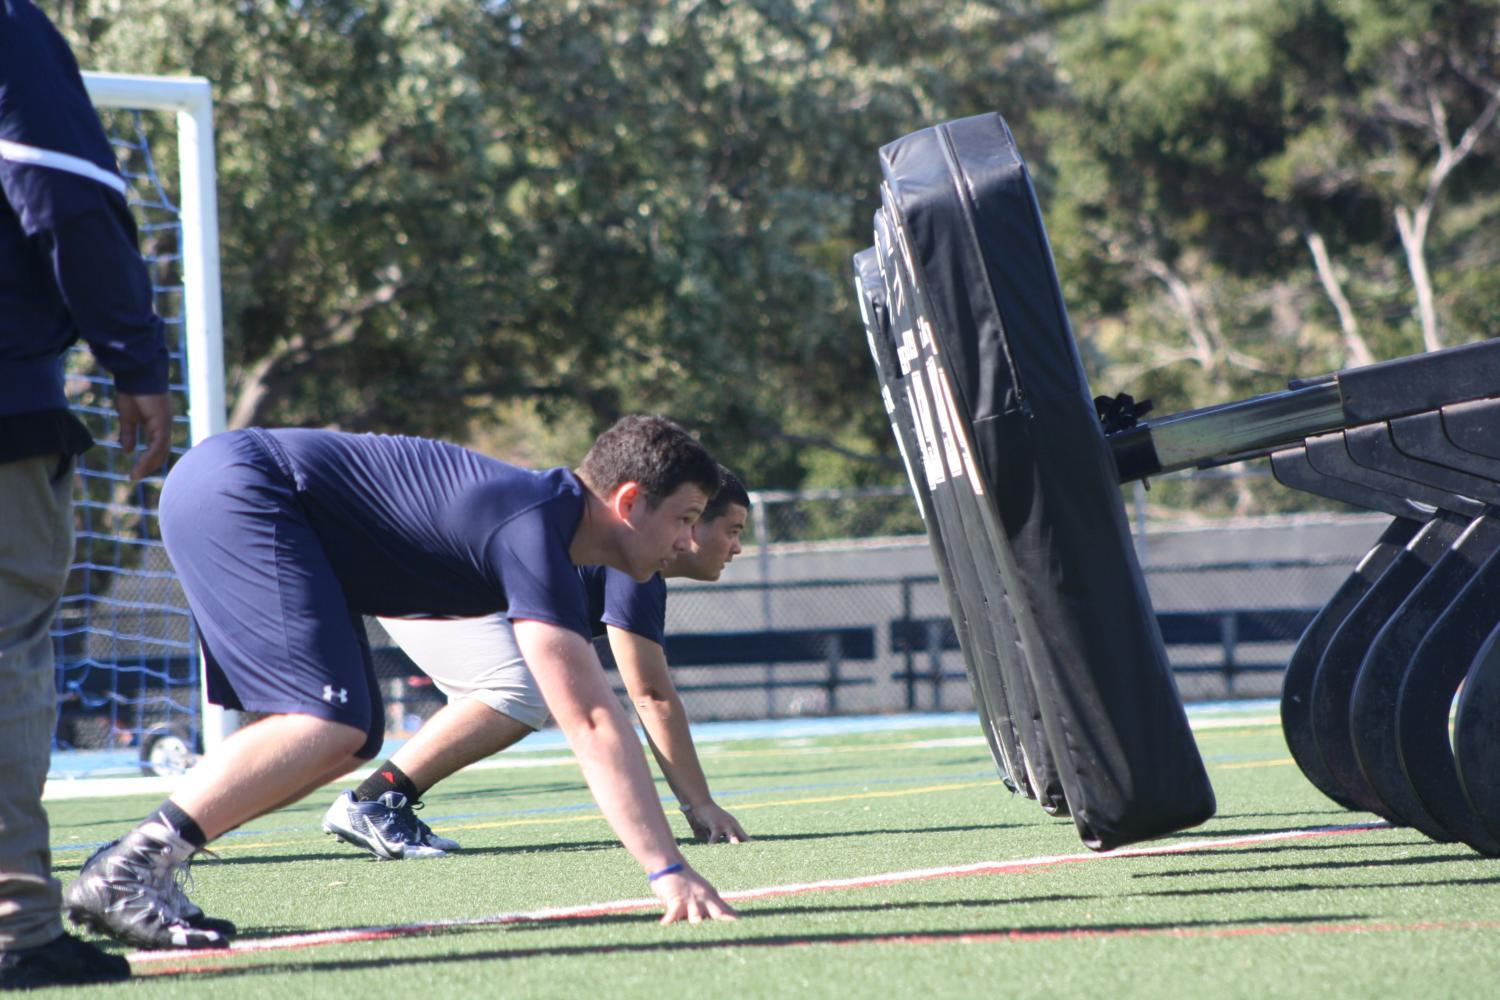 Varsity+football+players+practice+lineman+drills+after+school+on+May+25.